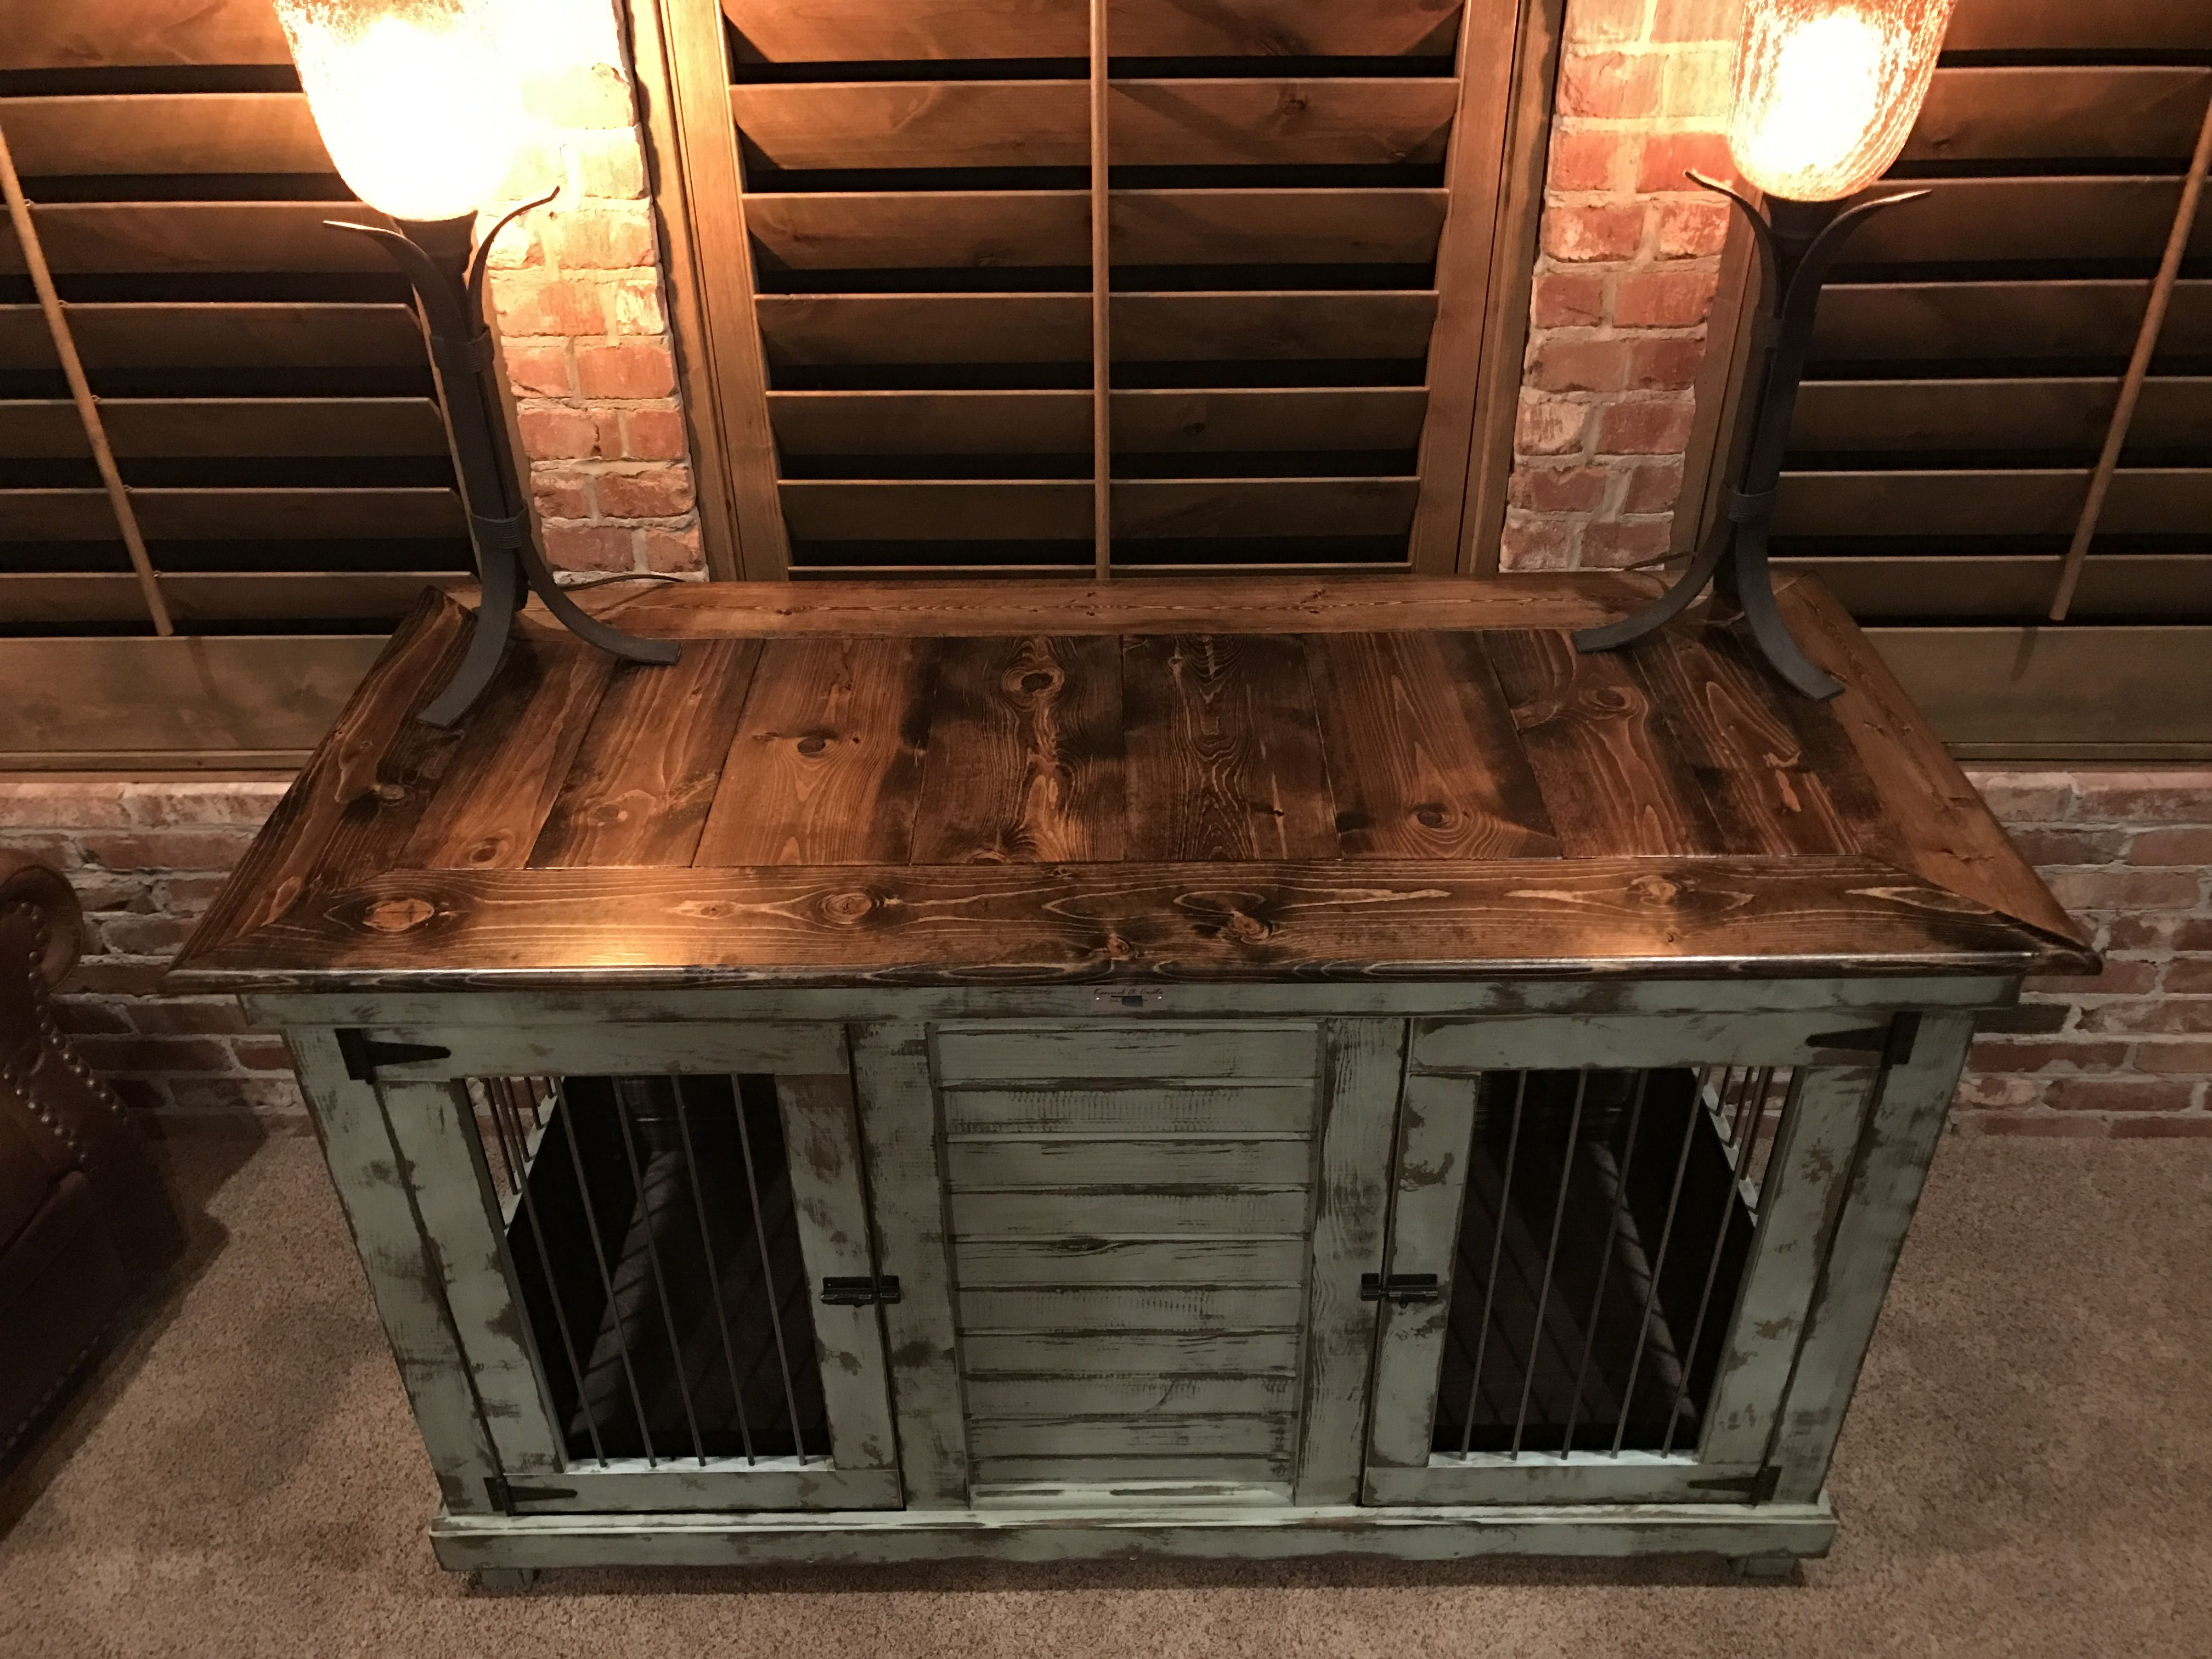 Urban farmhouse design with birdsong blue distressed paint for Design indoor dog crate